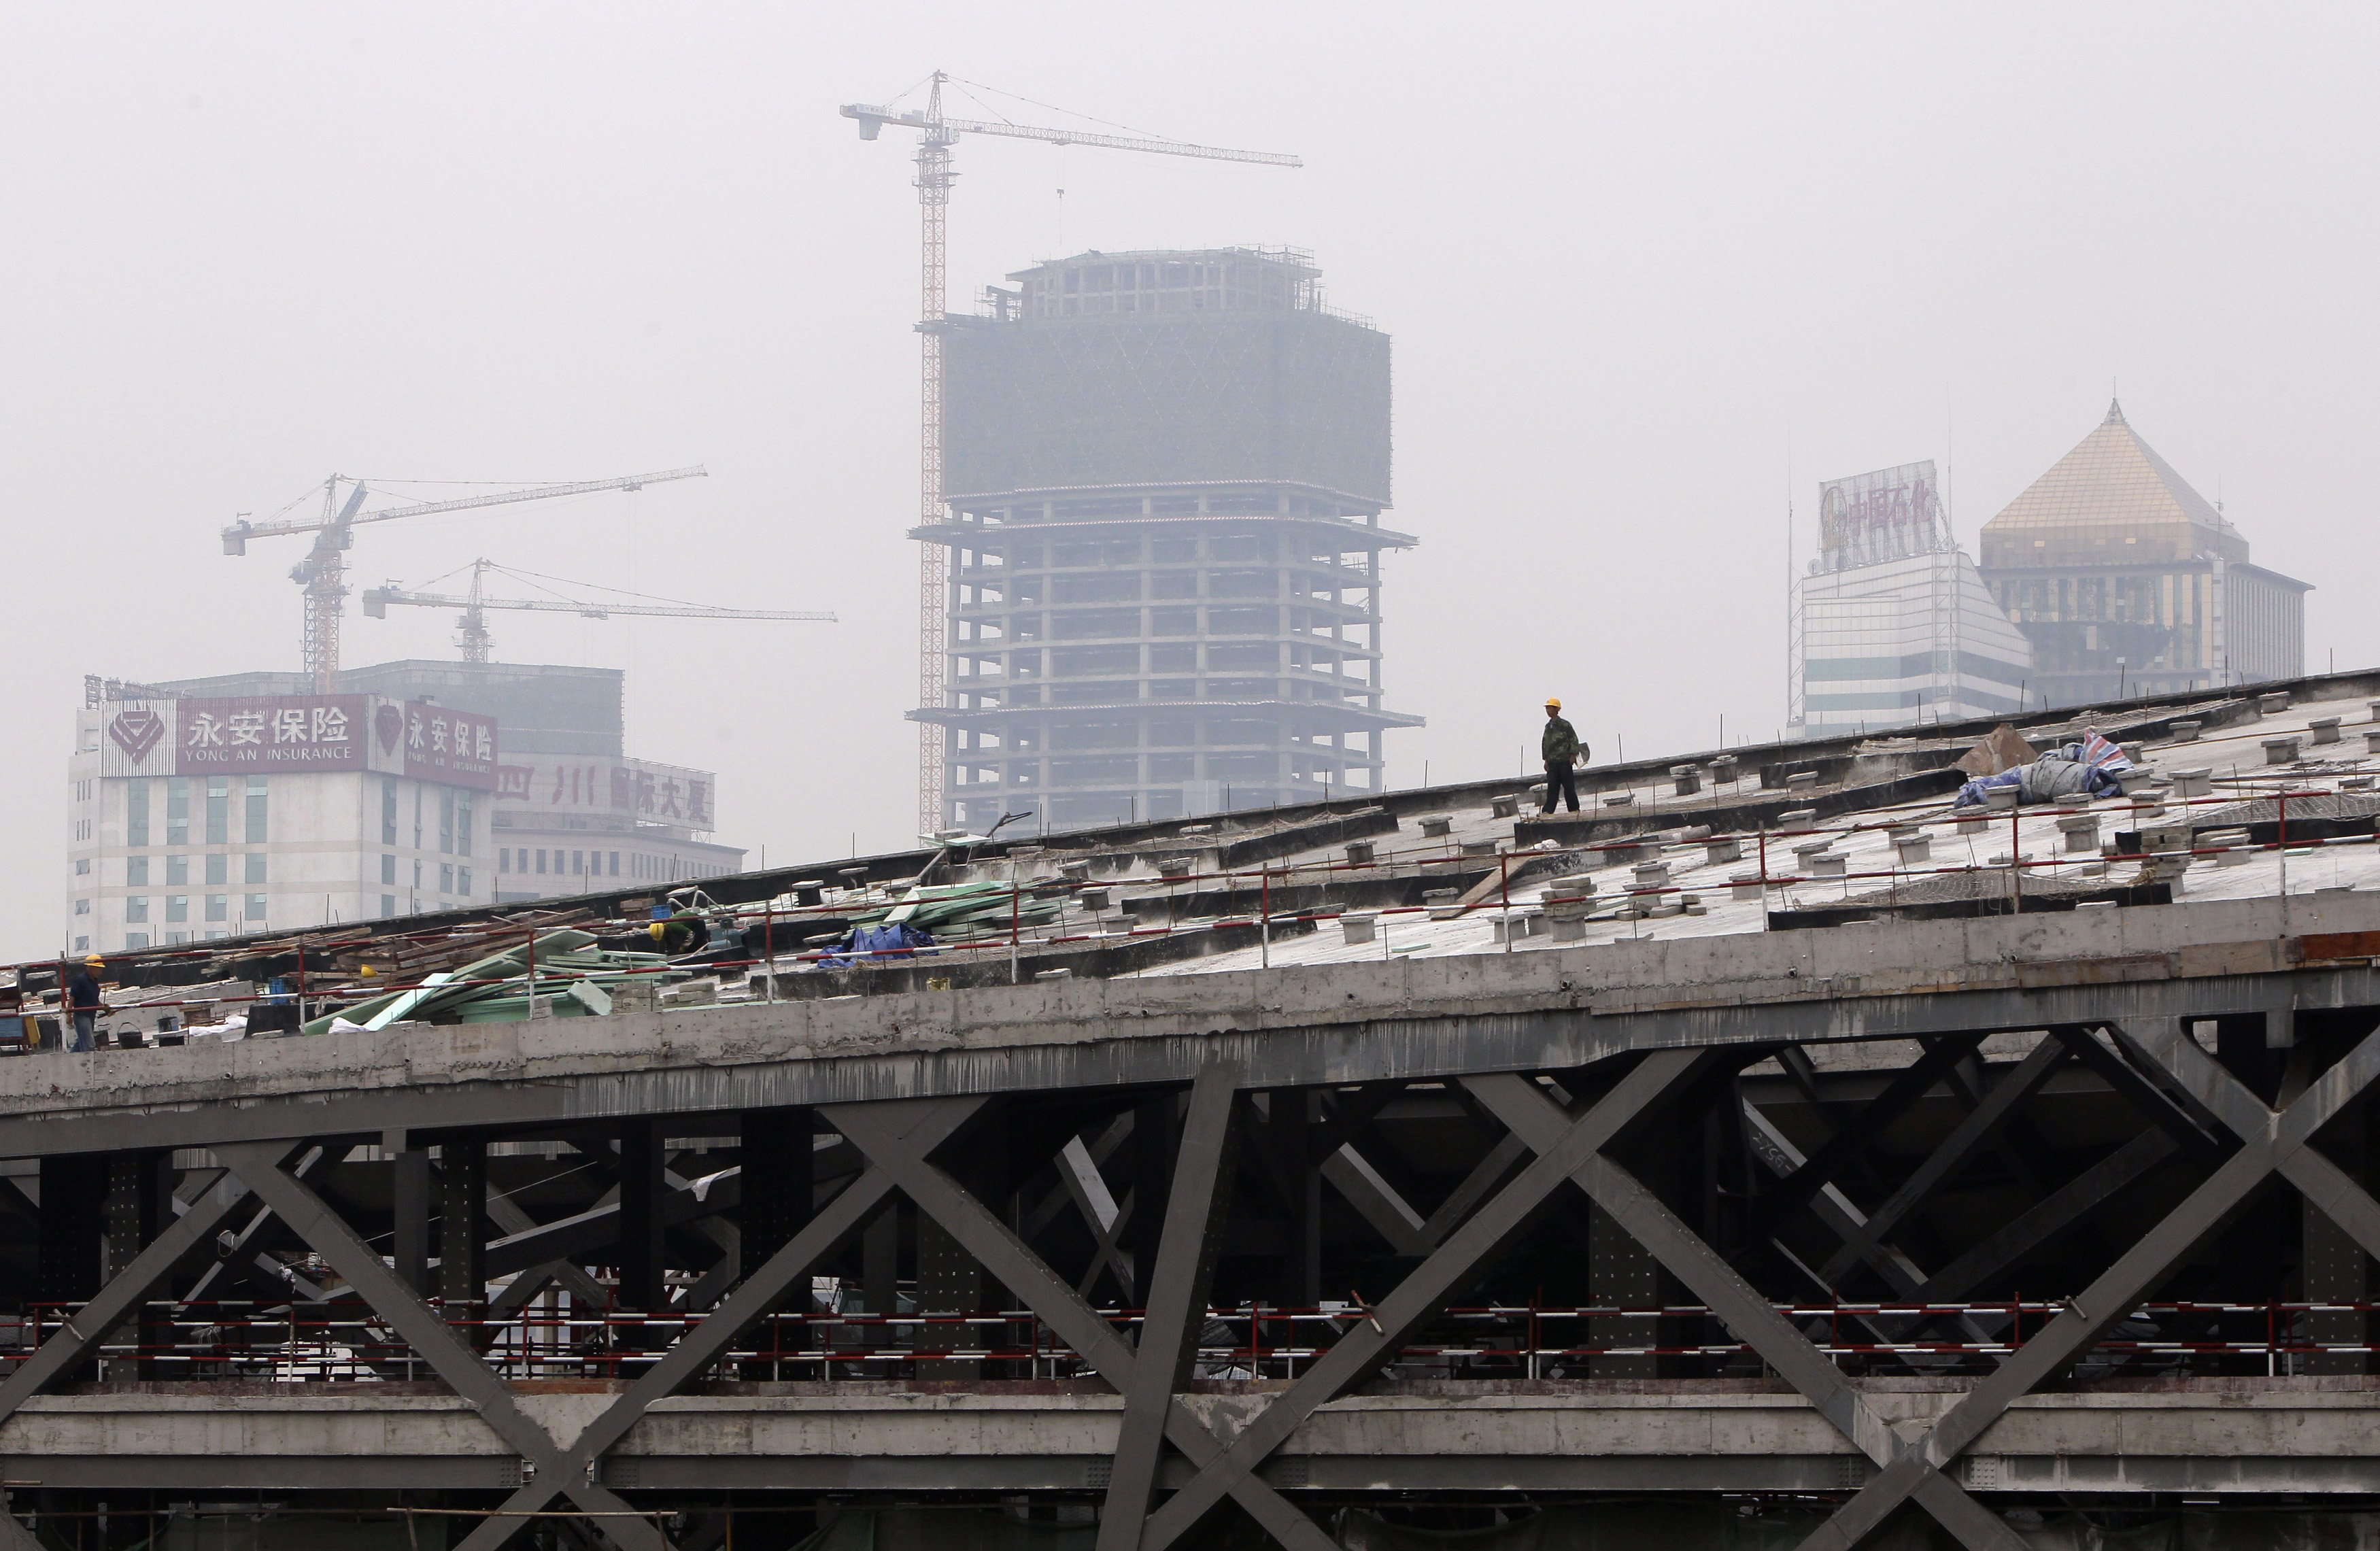 A labourer walks on the top of a construction site in Chengdu September 18, 2012. China's top leaders have pledged to step up policy fine-tuning in the second half of 2012 to bolster an economy that slowed to its weakest pace of growth in more than three years in the second quarter. REUTERS/Jason Lee